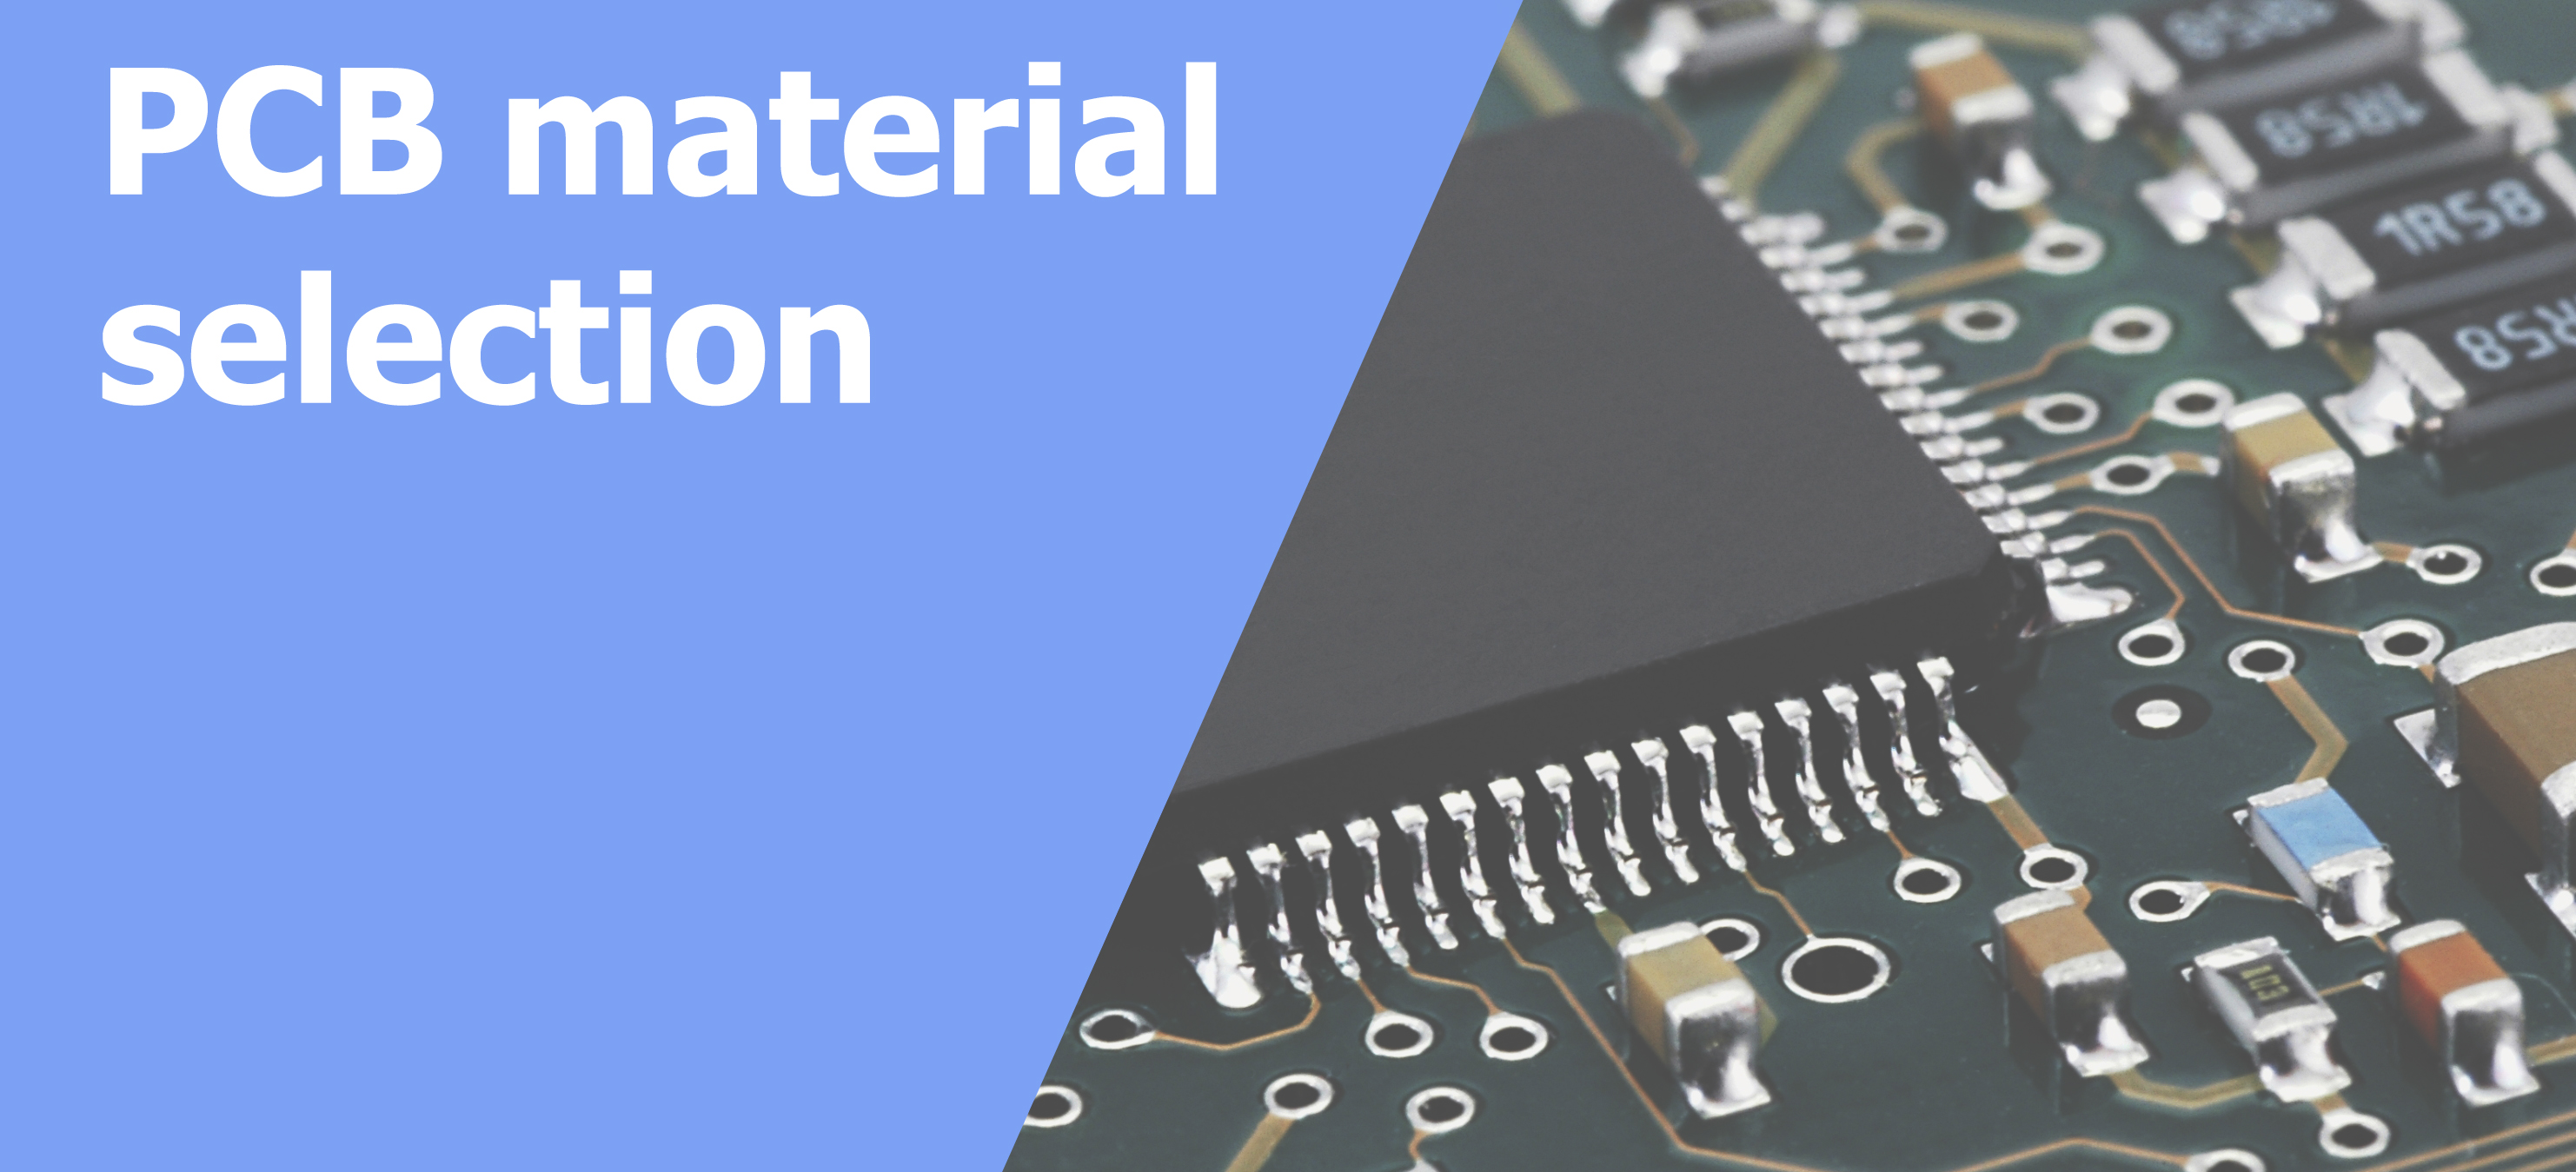 Base PCB Material: What to choose? - Vol 2 - PreventLAB